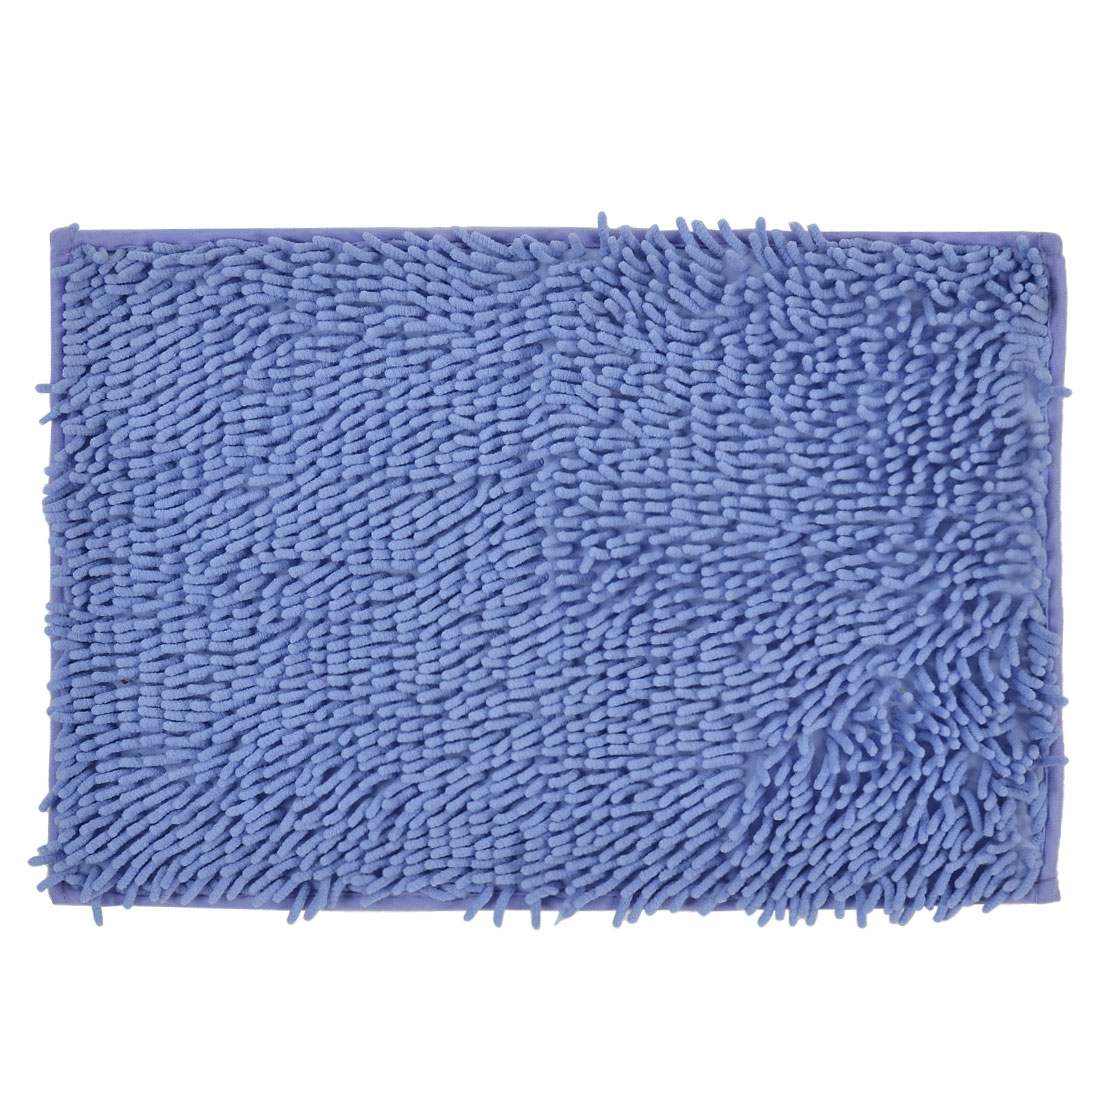 60cm x 40cm Light Blue Polyester Absorbent Slip-resistant Pad Bath Mat Shower Rug